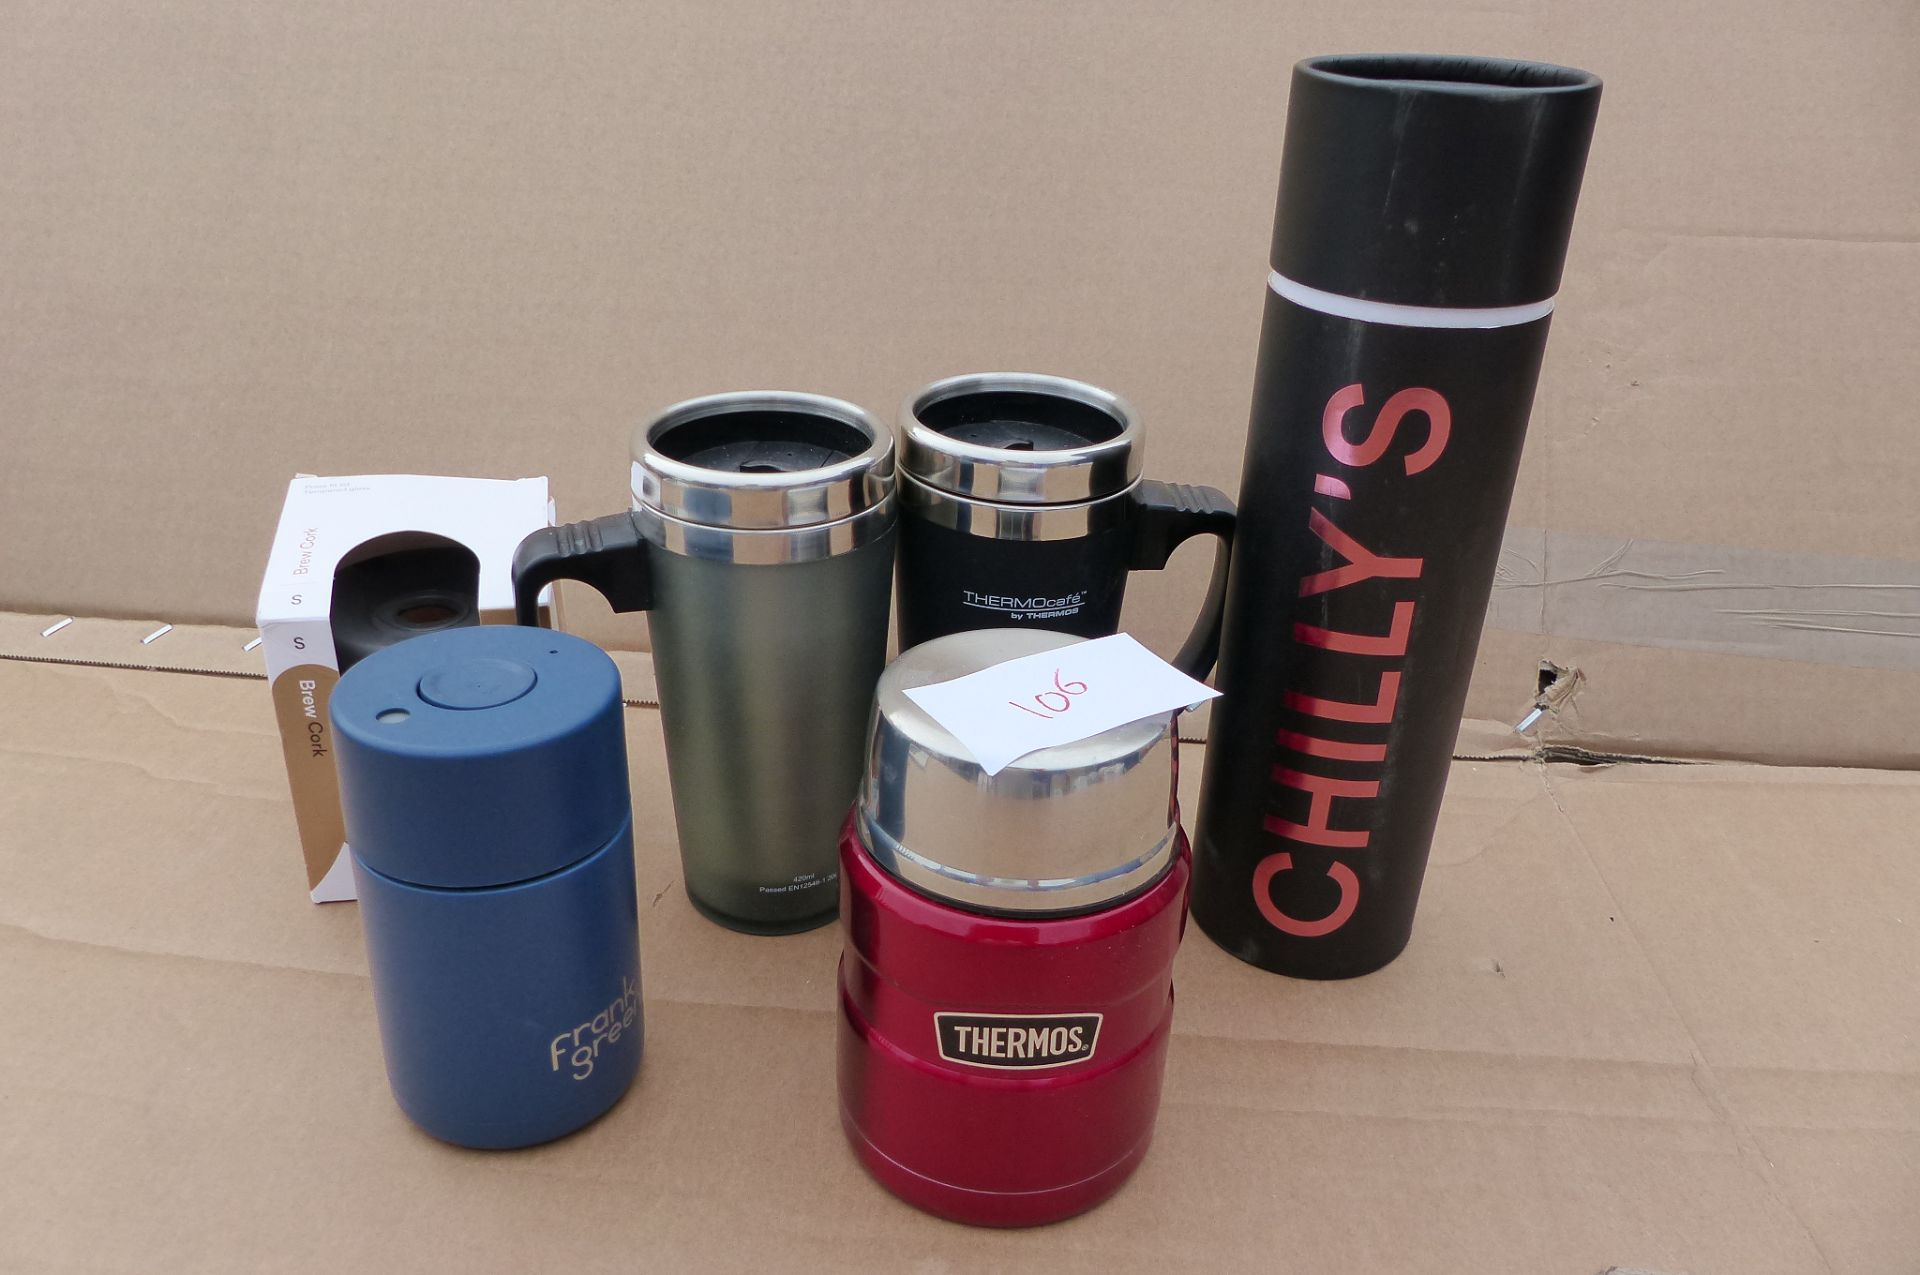 6 items Thermos travel mugs, Chillies water bottles